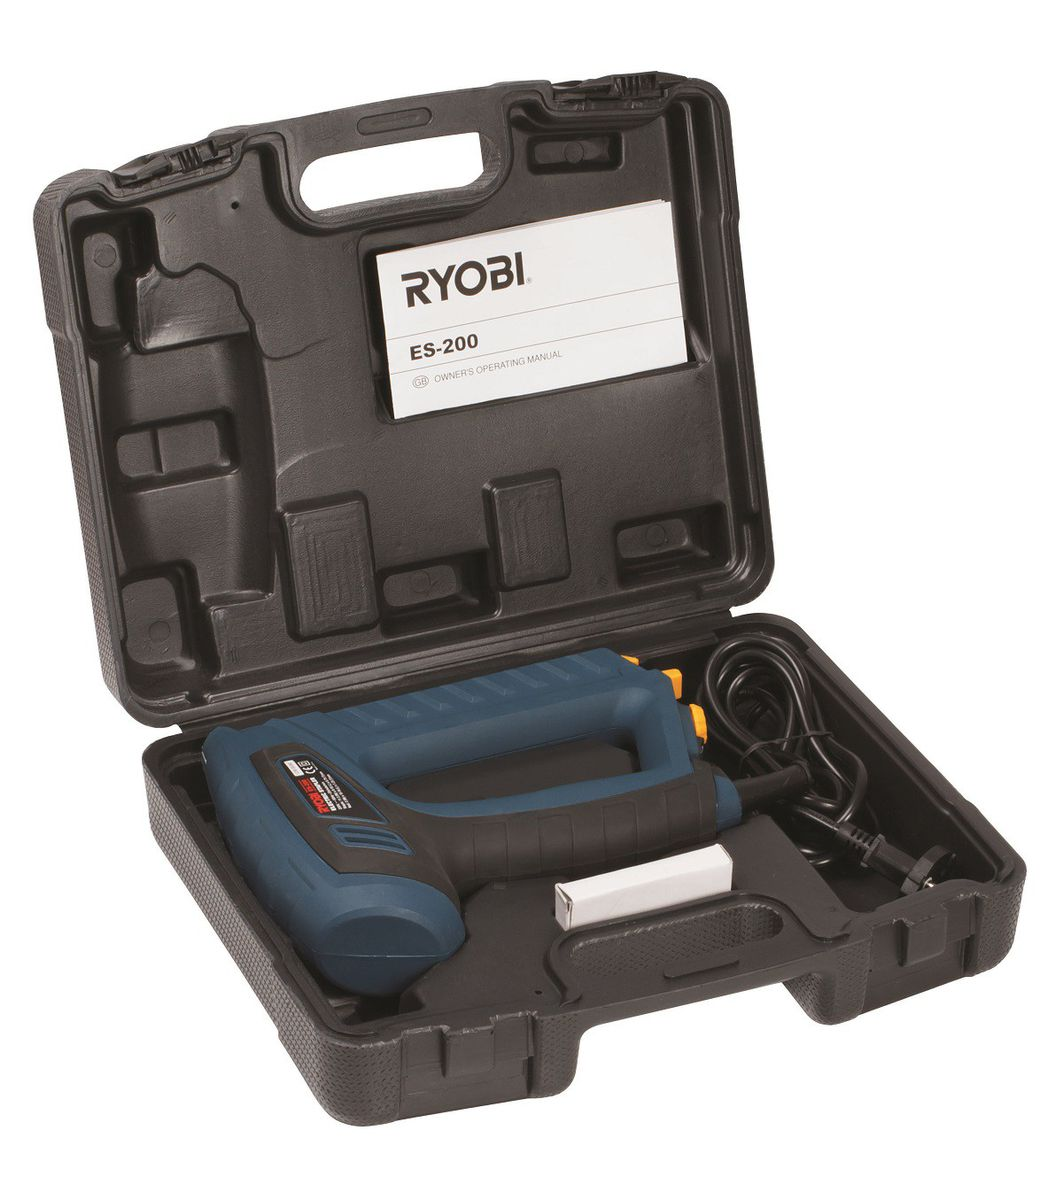 Electric Supercharger For Sale In South Africa: Ryobi - Electric Nailer & Stapler - 600w